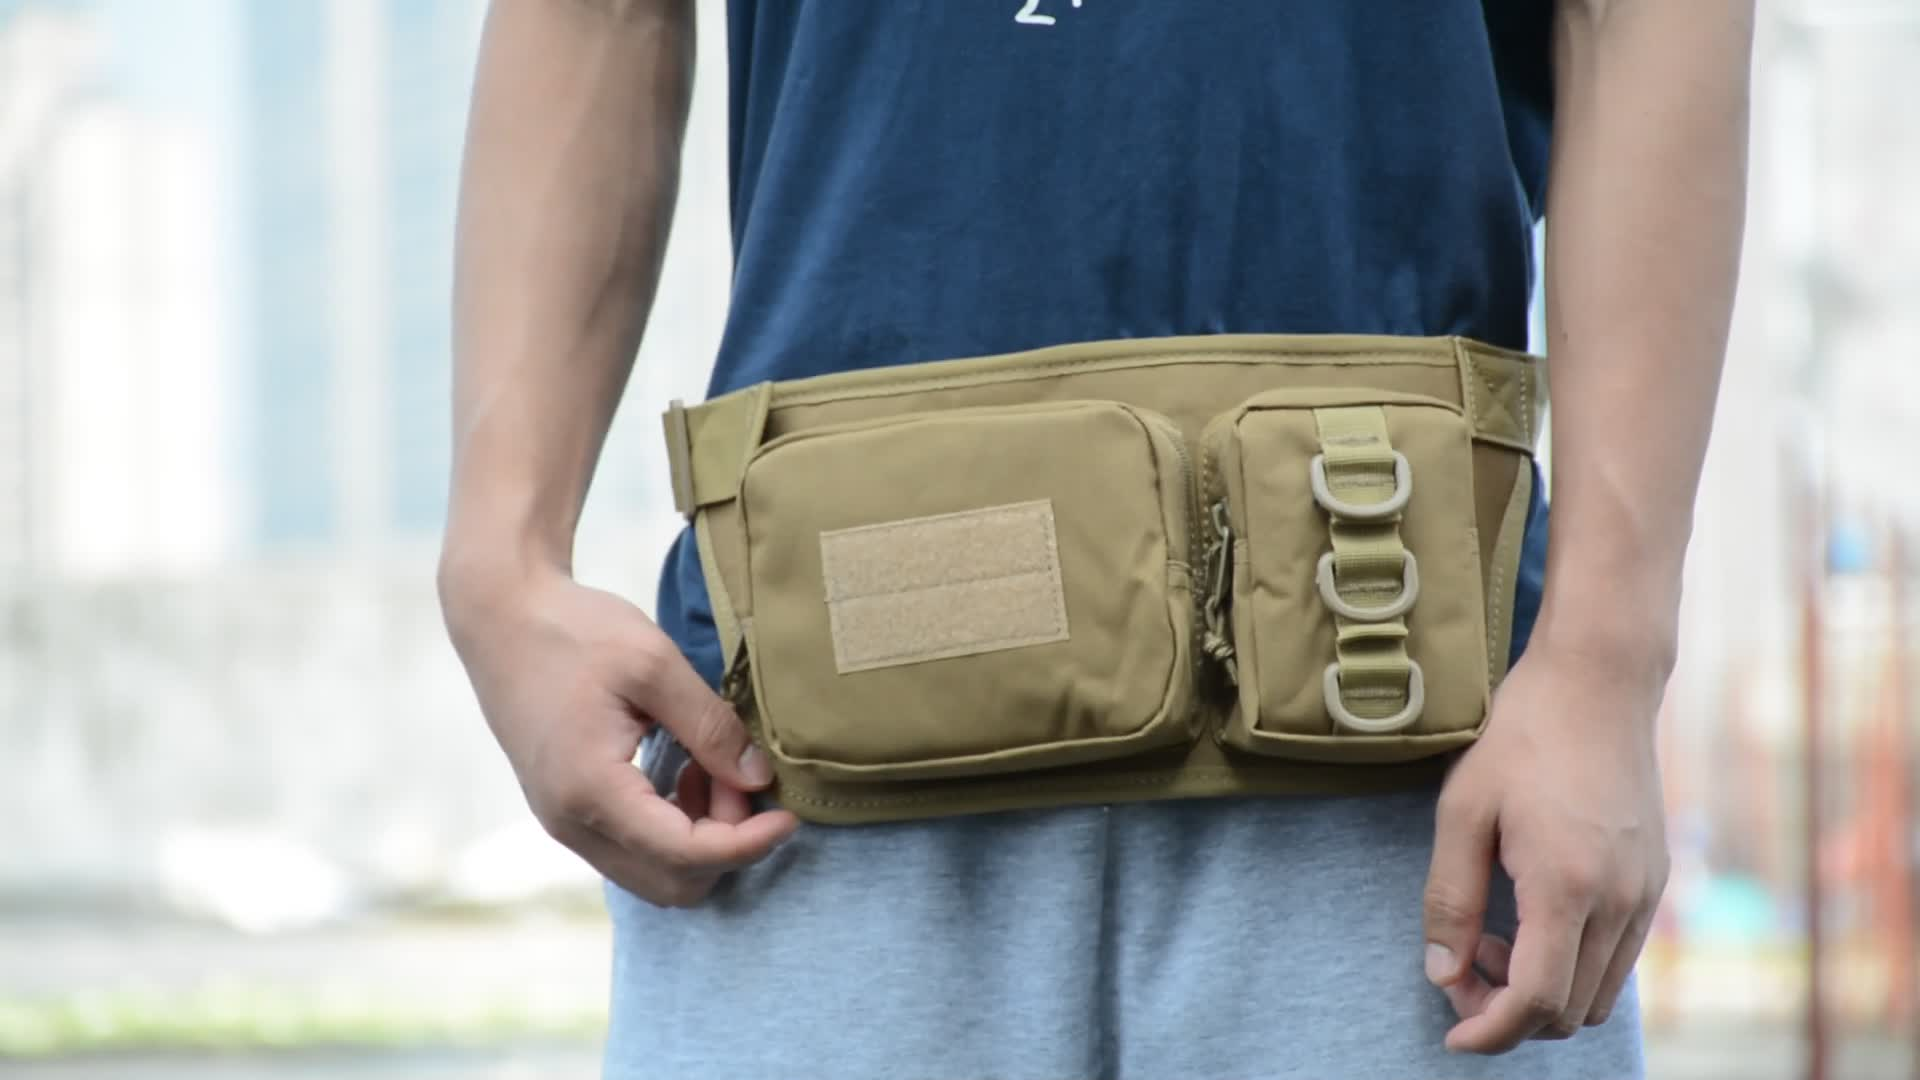 Tactical Waist Pack Portable Fanny Pack Outdoor Hiking Travel Large Army Waist Bag Military Waist Pack for Daily Life